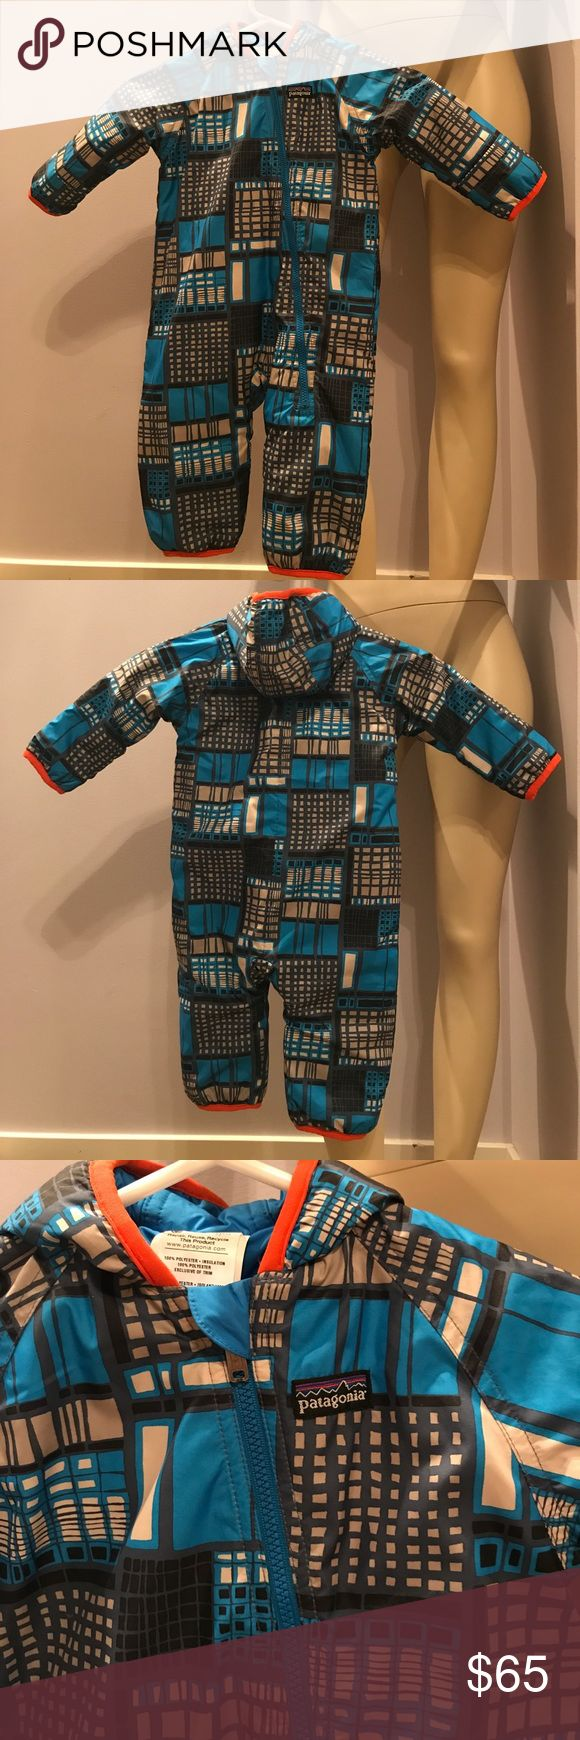 Patagonia baby snow suit/onsie 6months baby NWOT Reversible snowsuit. The other side is blue. The size says 6 months but runs big. So cute! Patagonia Other